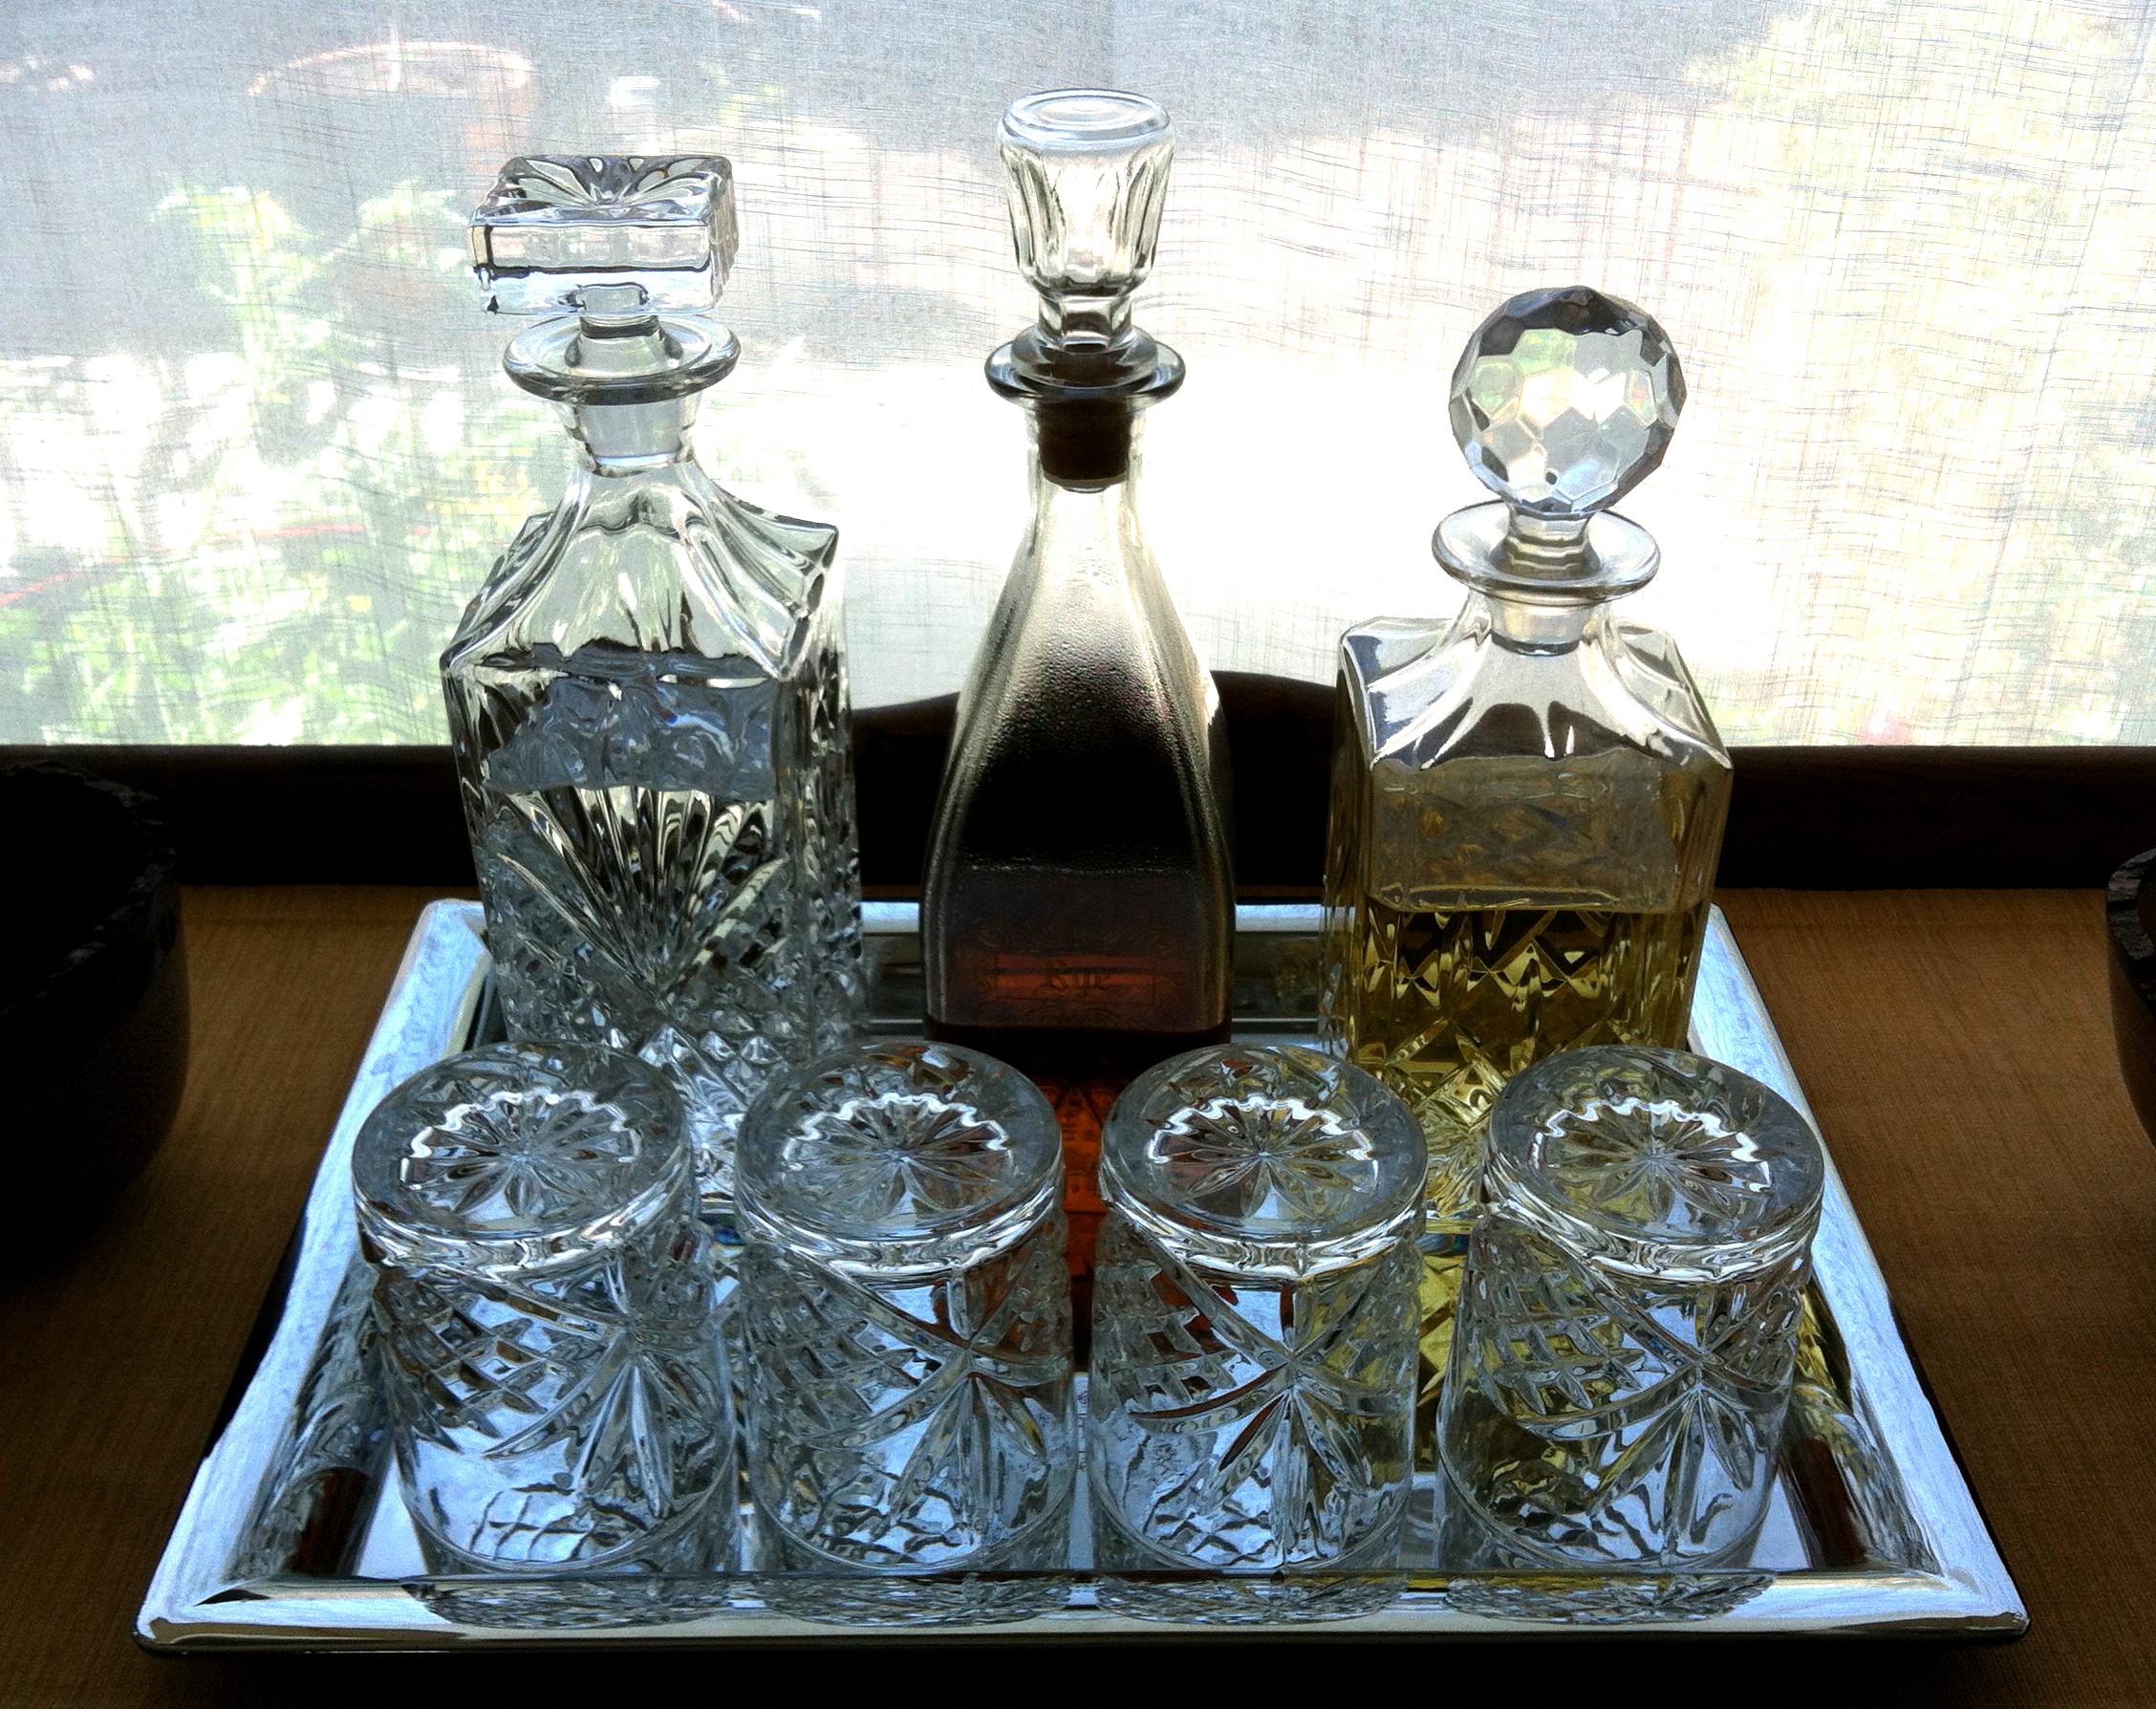 Home Bar 101a – Your First Home Bar! | Booze.Blog : Home of the ...